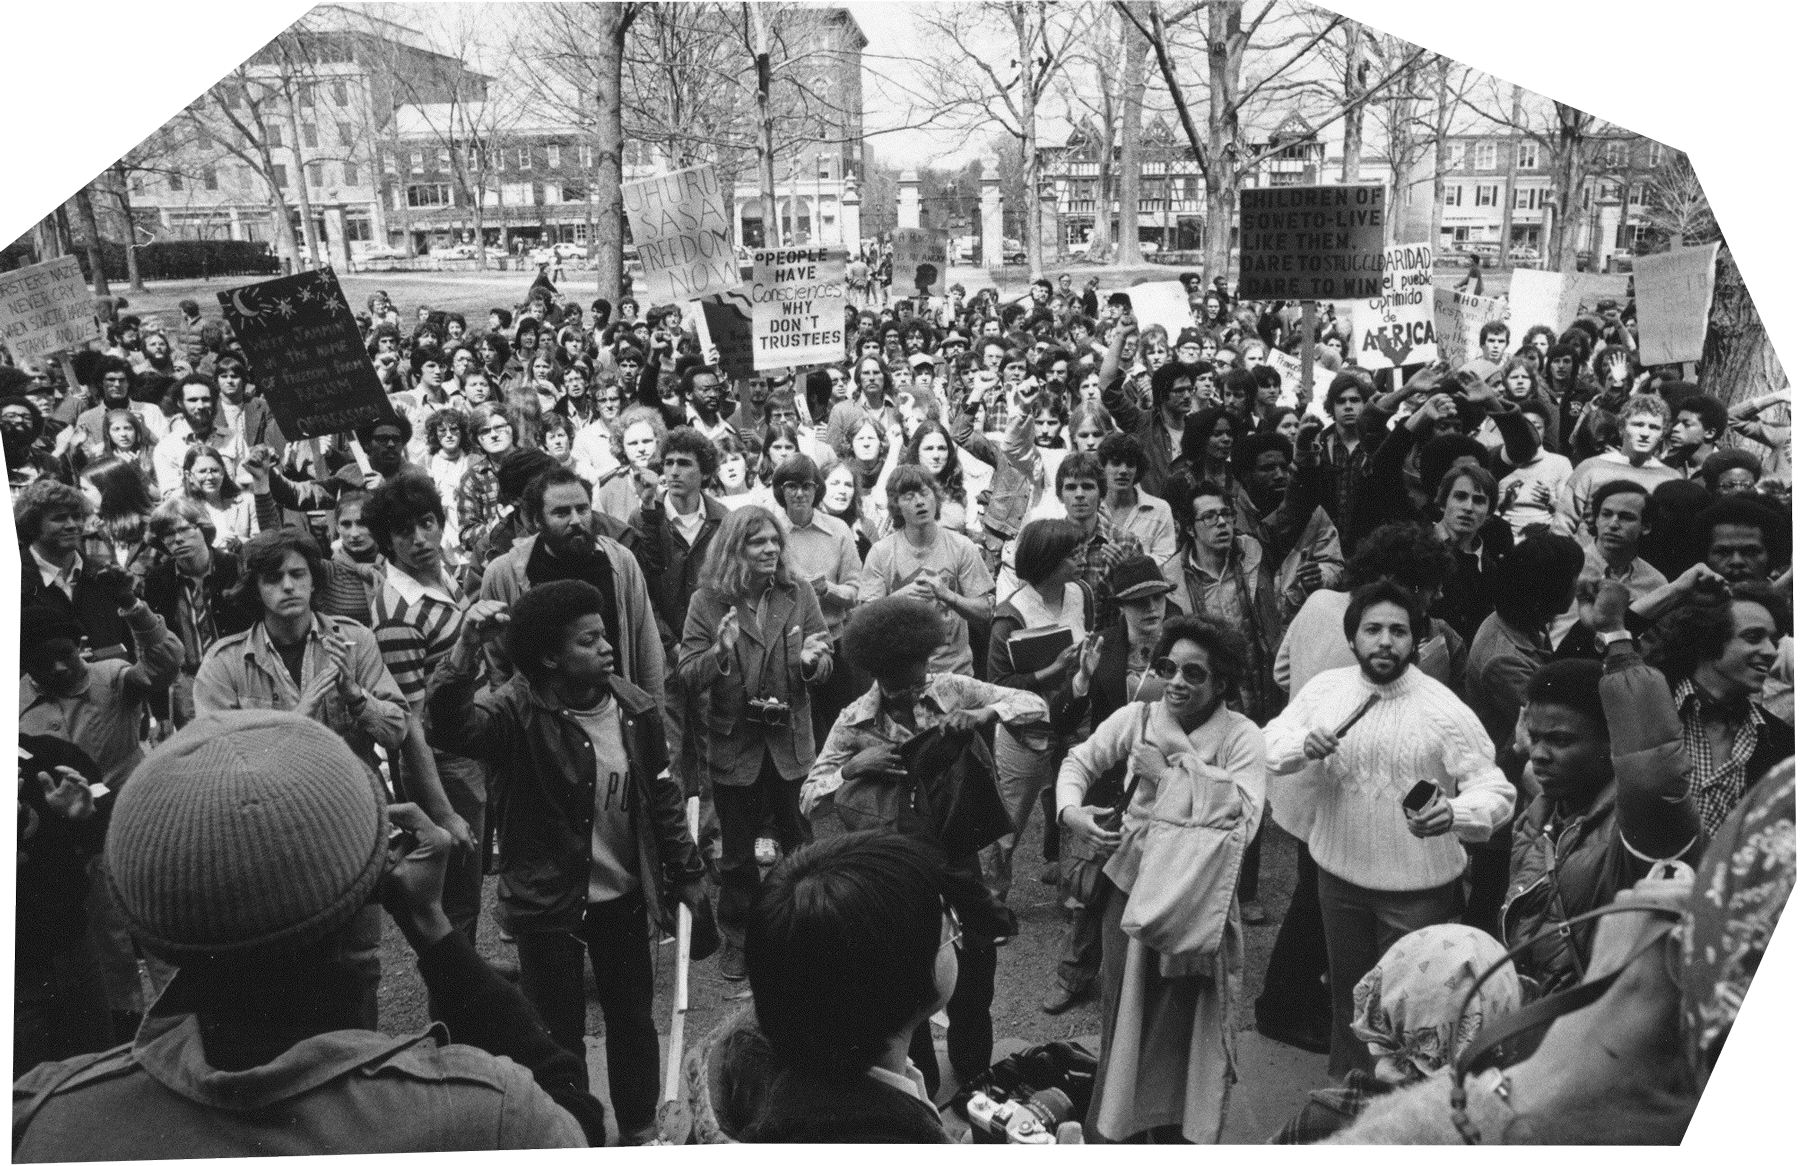 """Hundreds of students outside of Nassau Hall protesting against South African apartheid in 1978, with signs like """"People Have Consciences, Why Don't Trustees."""""""